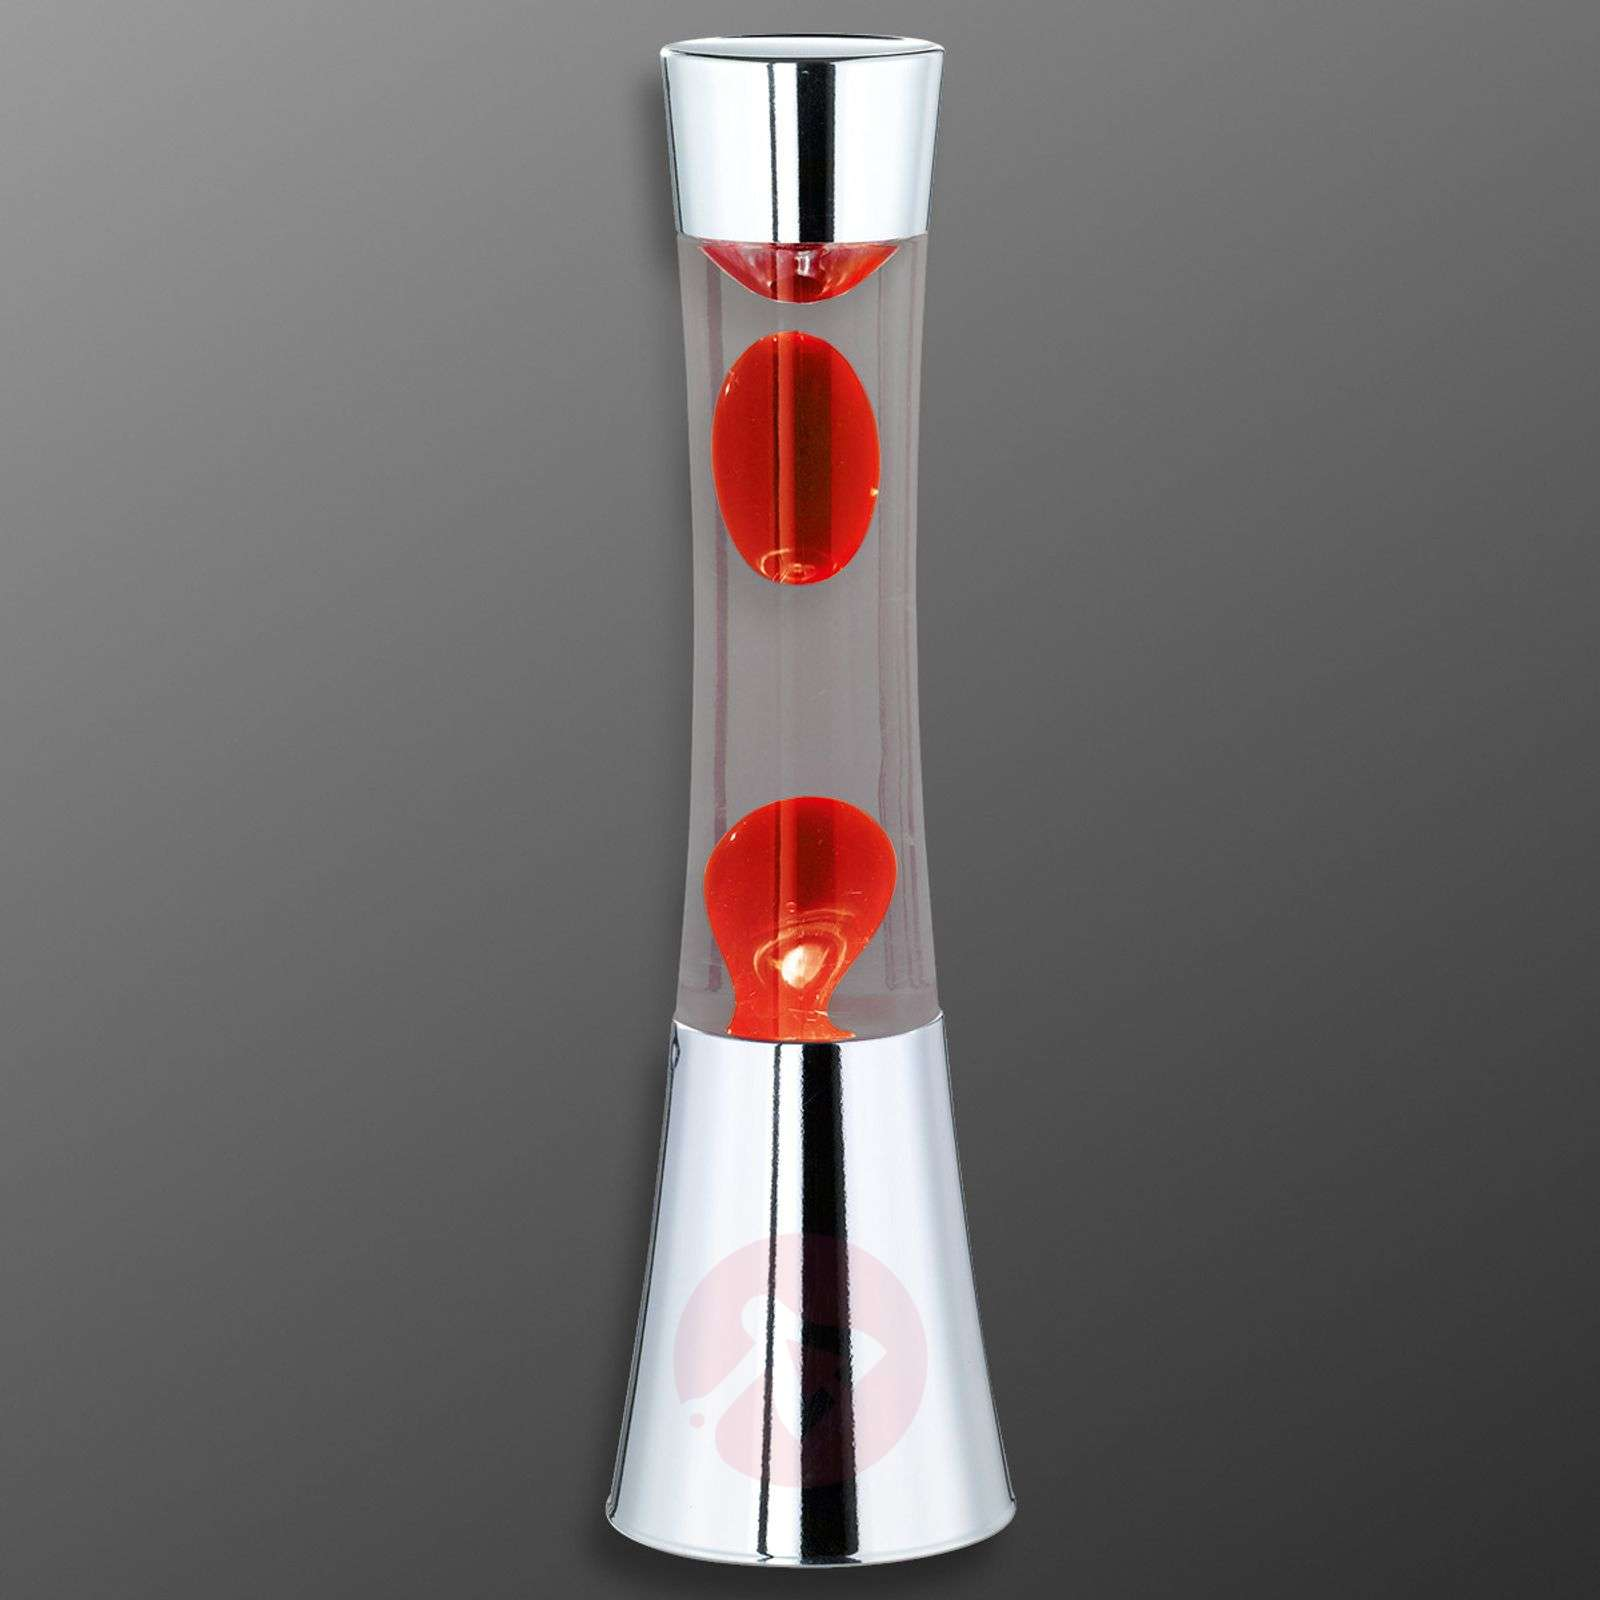 Jarva lava lamp for a cosy atmosphere-8029072-01